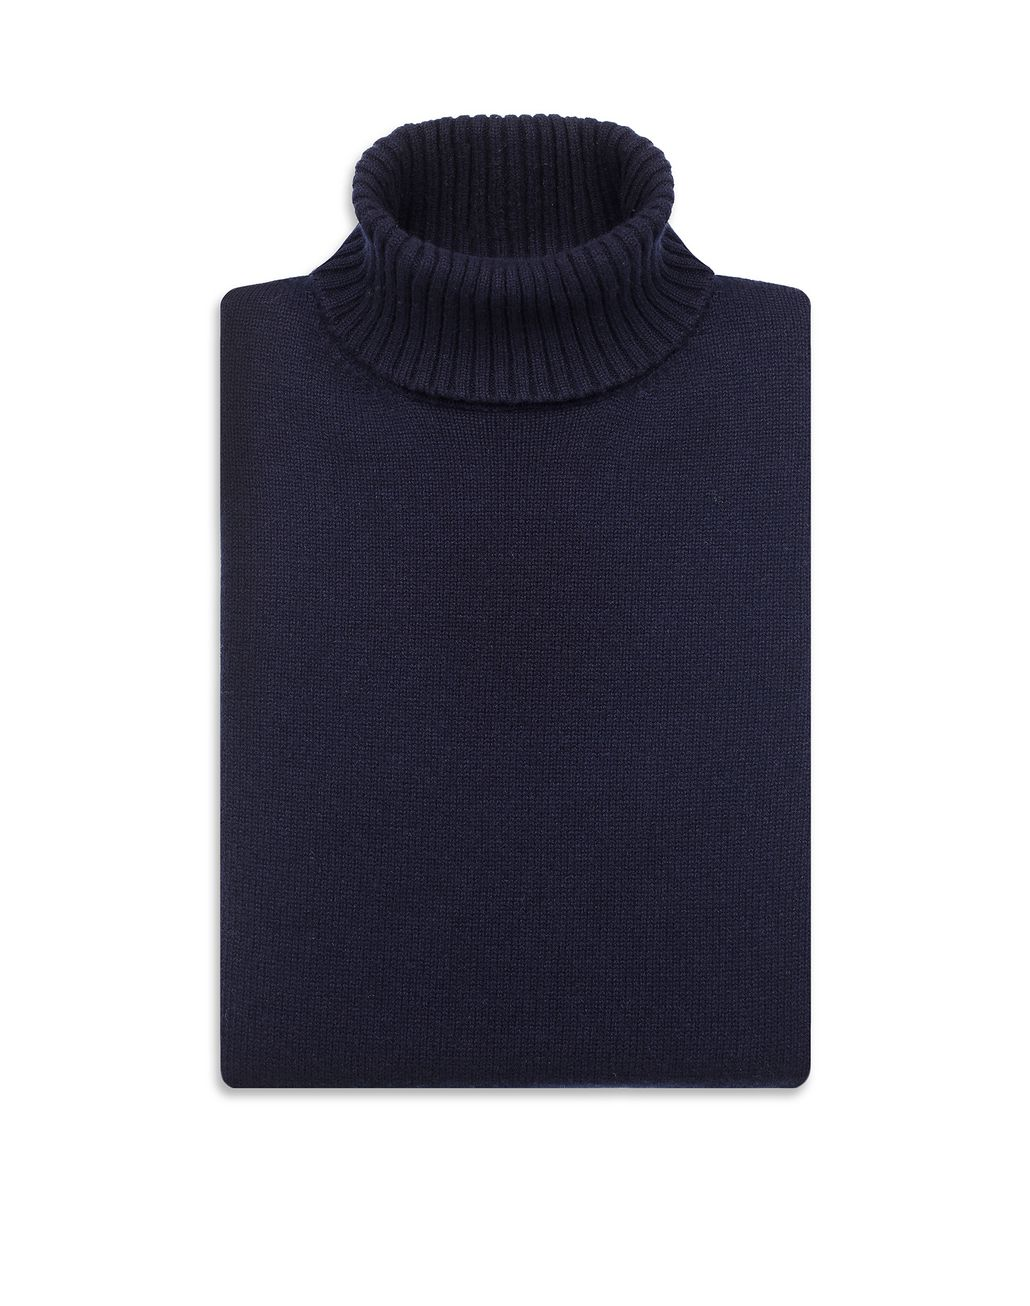 BRIONI Navy Blue Turtleneck Sweater Knitwear [*** pickupInStoreShippingNotGuaranteed_info ***] e